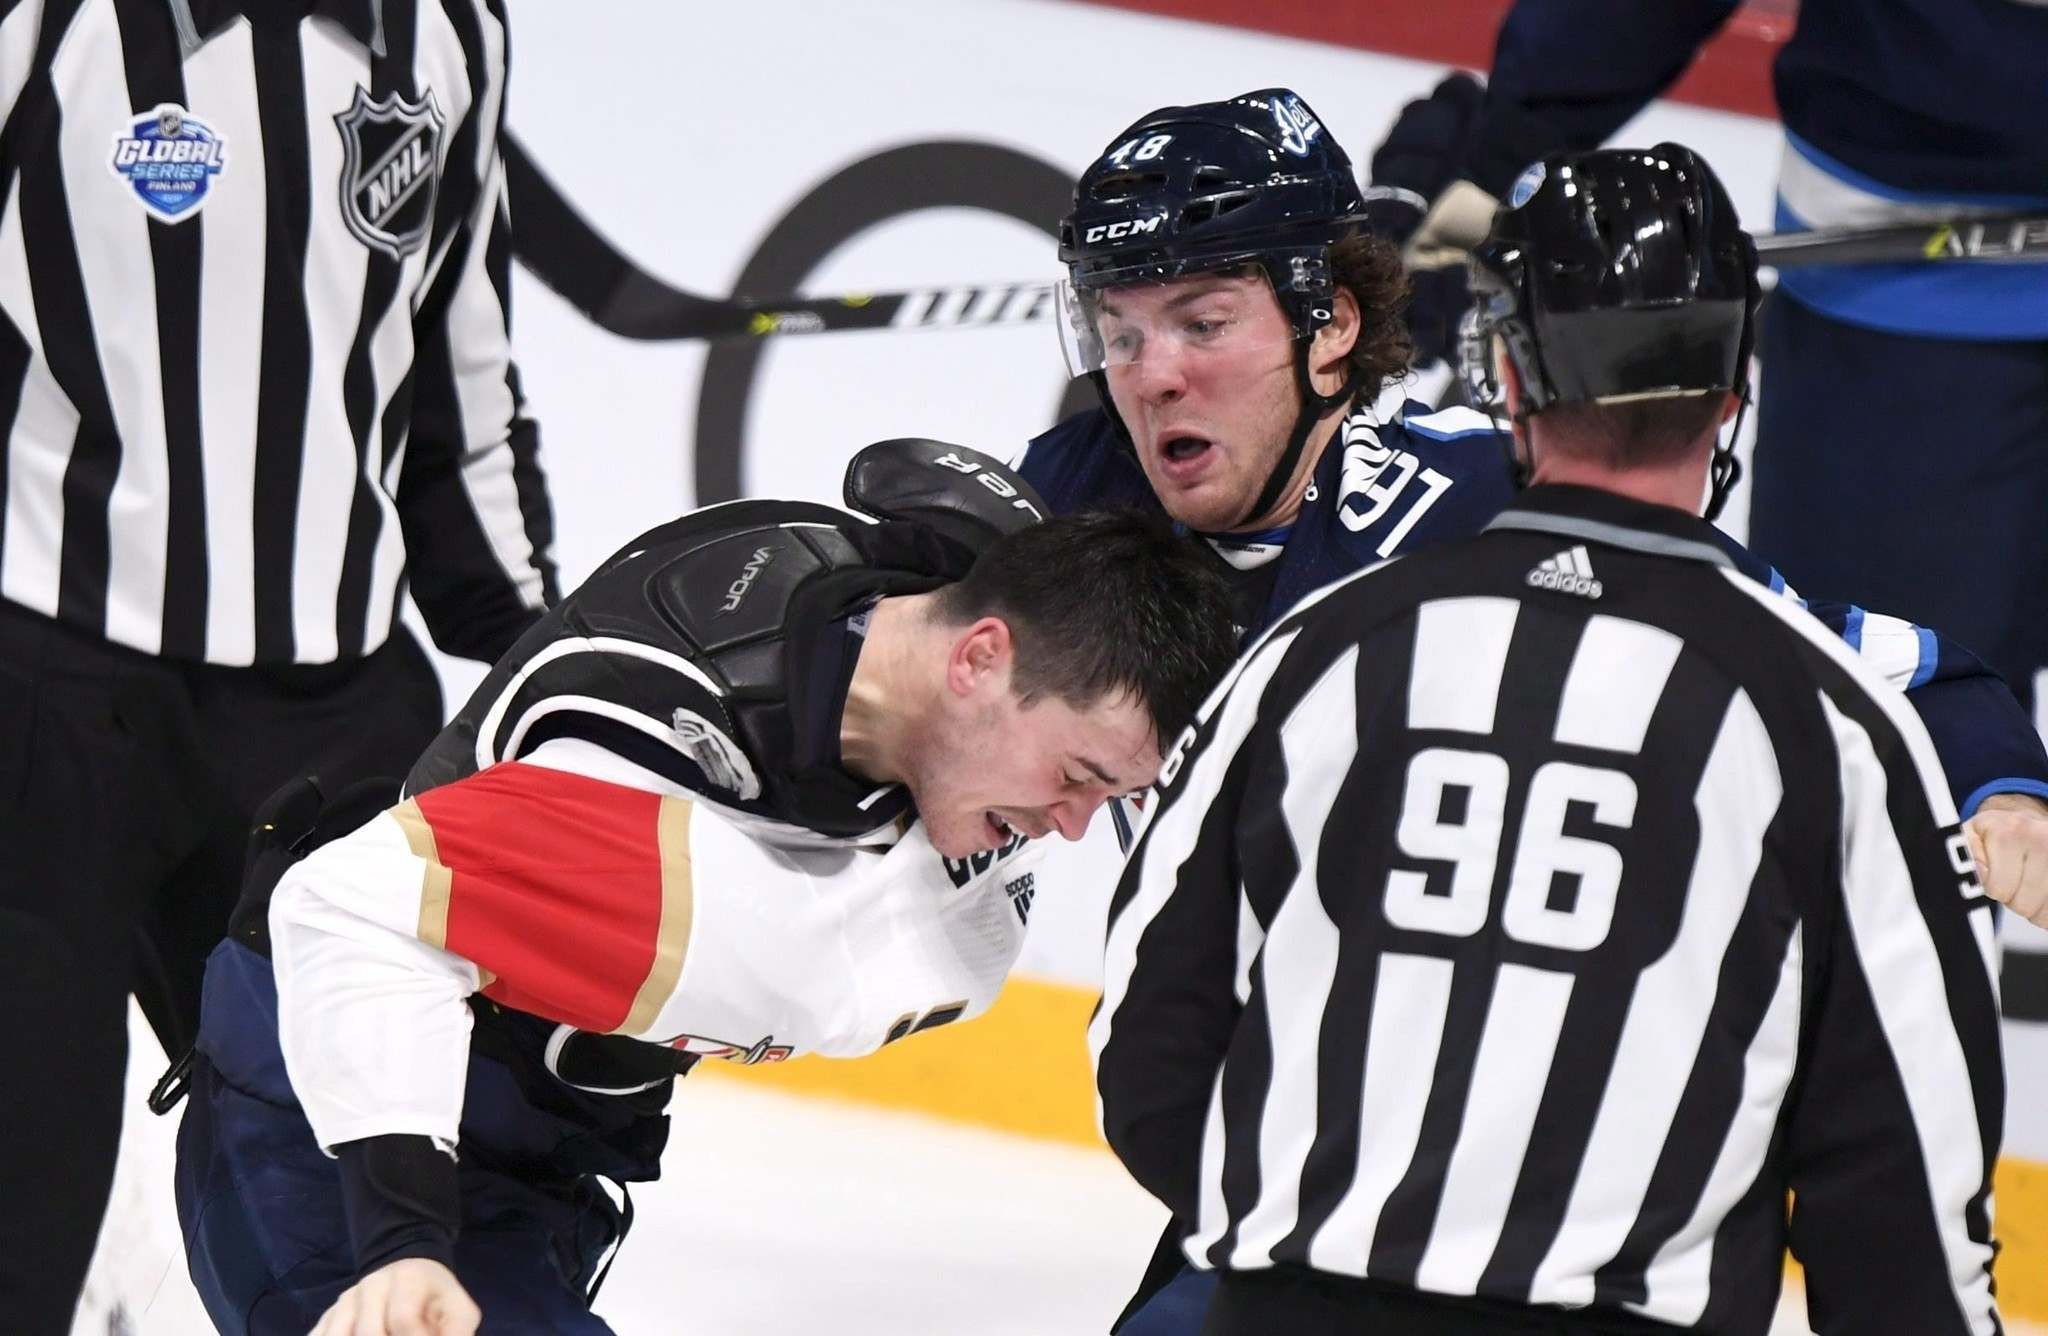 MacKenzie Weegar jumped in to fight Brendan Lemieux after the Winnipeg Jet hit Vincent Trocheck in the head on Nov. 2 in Helsinki. Lemieux received a two-game suspension and was fined US$9,000 in salary. (Martti Kainulainen / Lehtikuva files)</p>